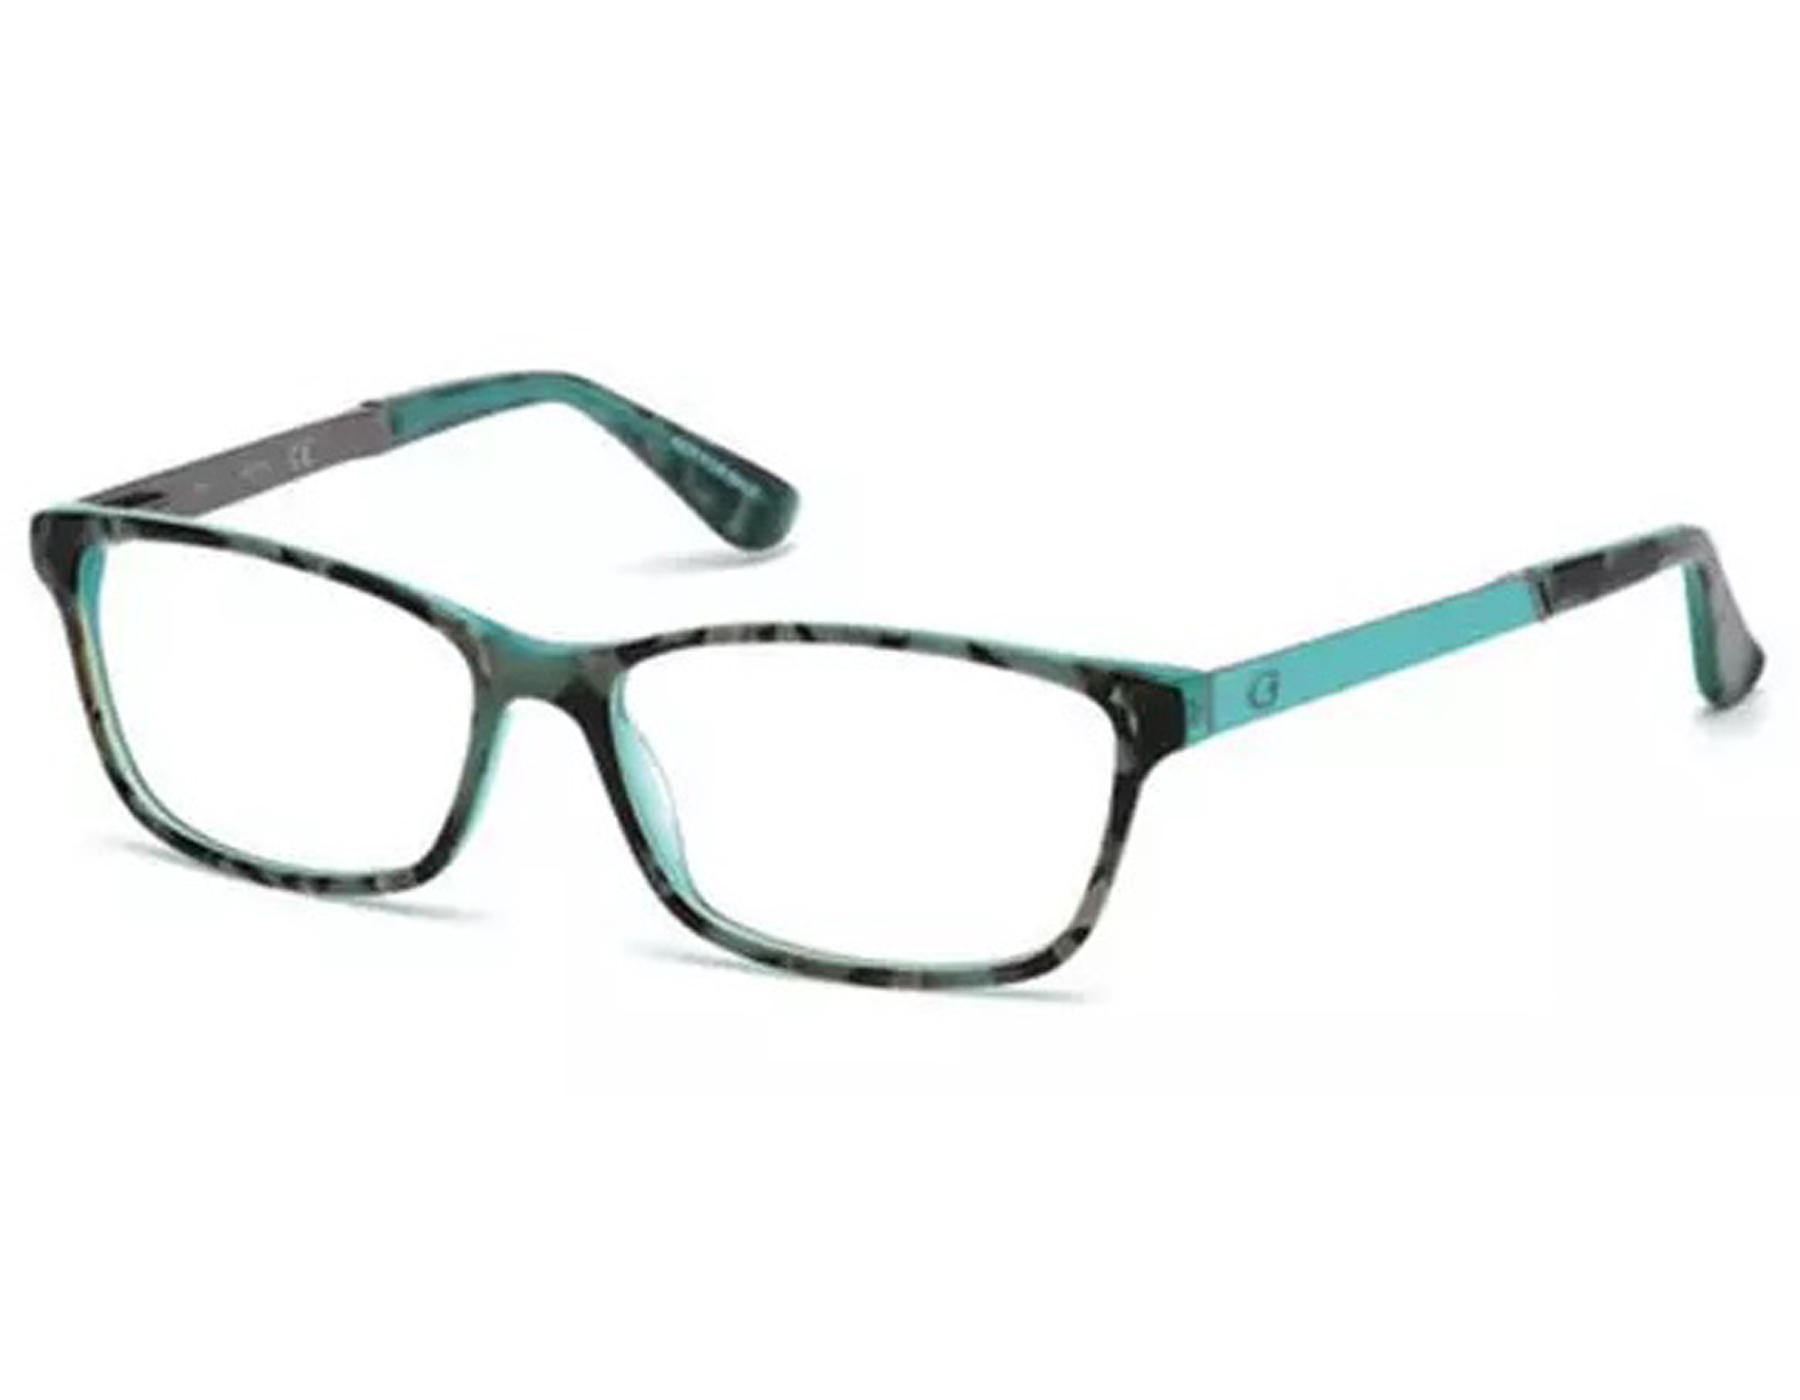 babc0c439f Details about NEW Guess GU 2628 089 55mm Turquoise Optical Eyeglasses Frames